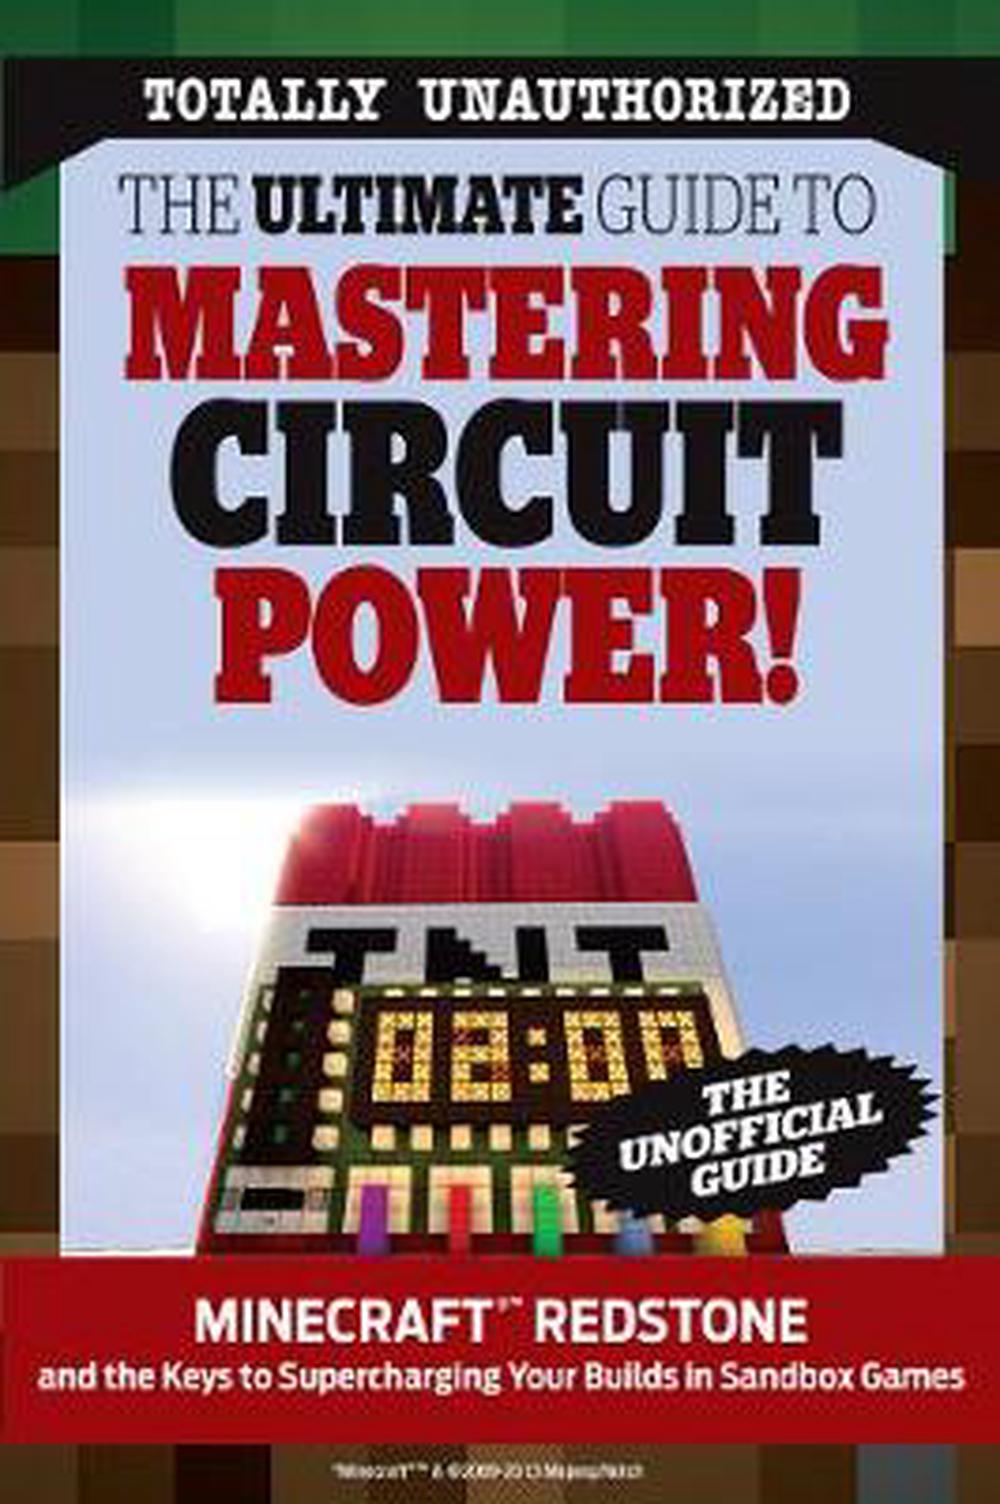 The Ultimate Guide To Mastering Circuit Power Minecraftrtm Minecraft Redstone Circuits